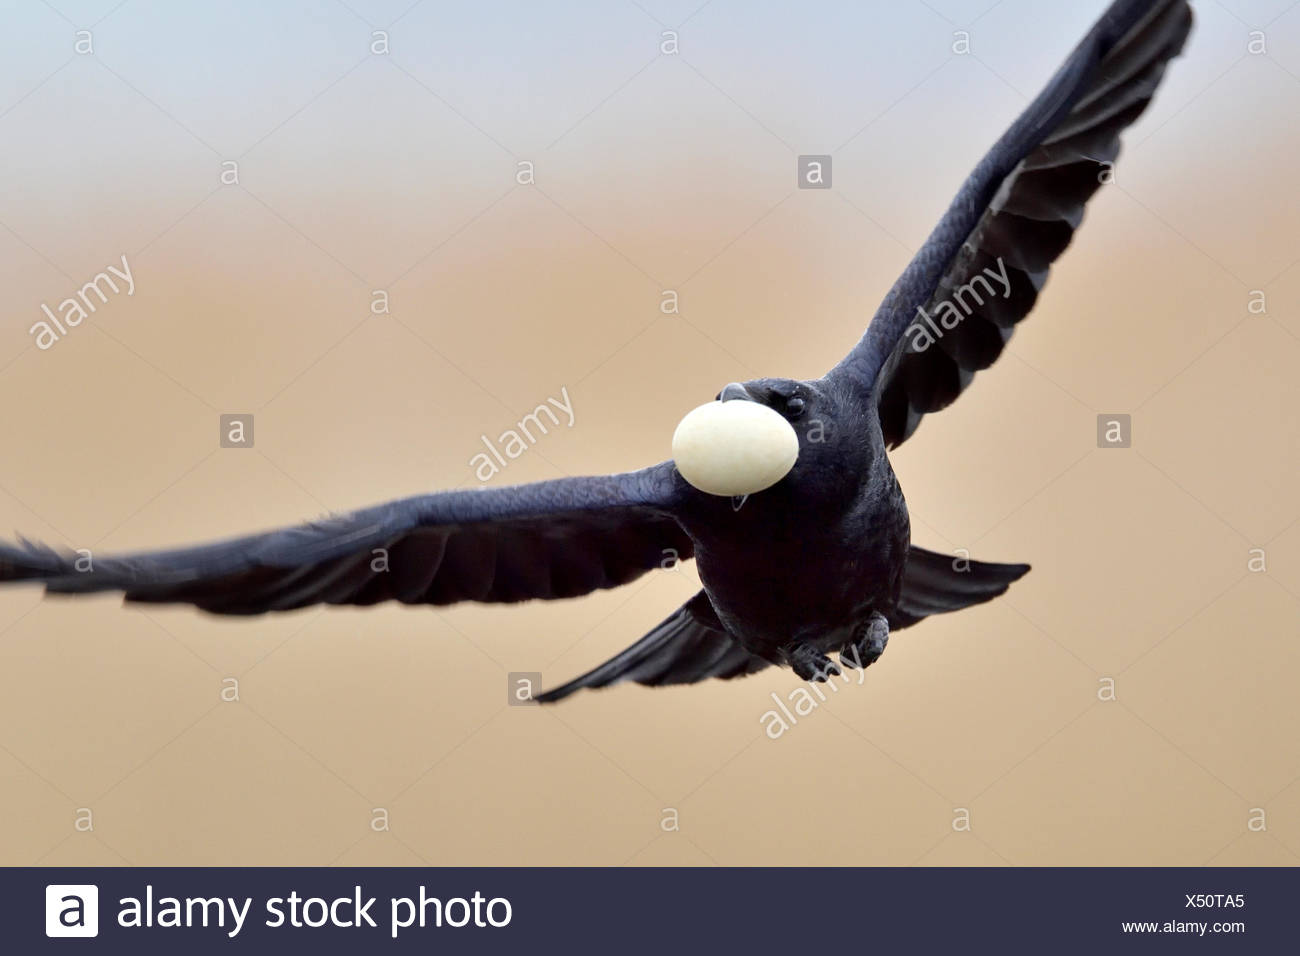 Rook (Corvus frugilegus) flying with stolen egg from a nest of an Eurasian Coot (Fulica atra), Canton of Neuchâtel, Switzerland - Stock Image